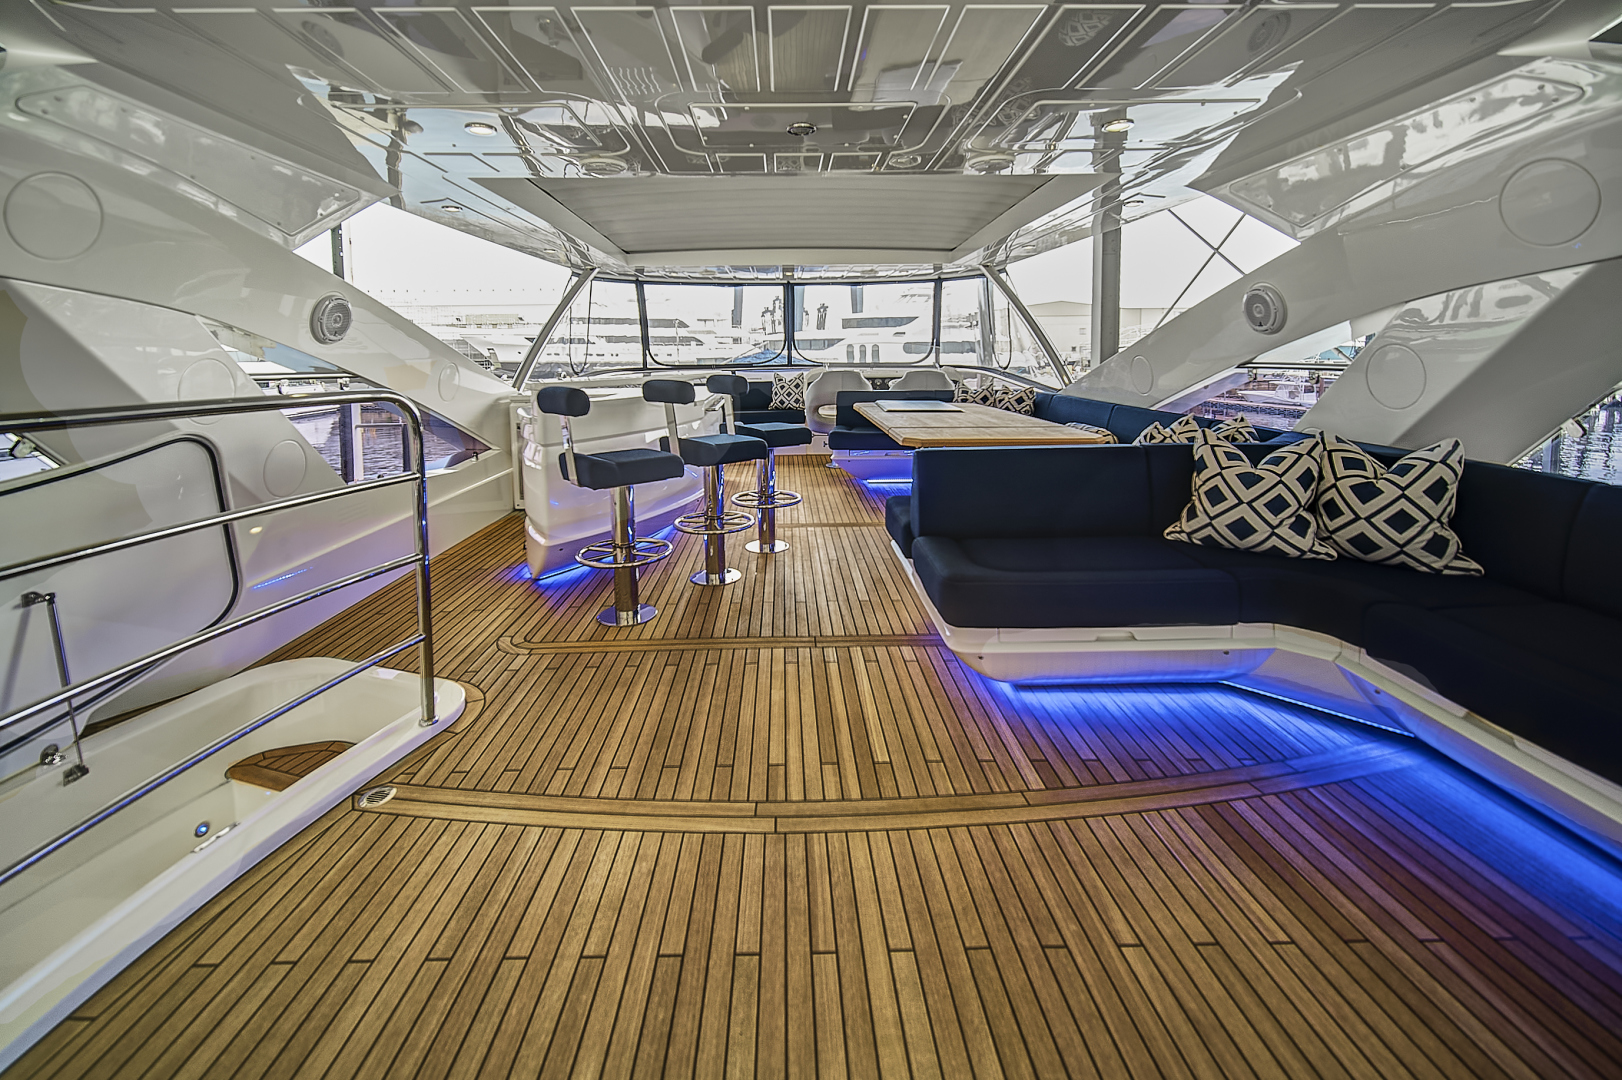 Sunseeker-86 Yacht 2019-Its Noon Somewhere Fort Lauderdale-Florida-United States-1556659 | Thumbnail